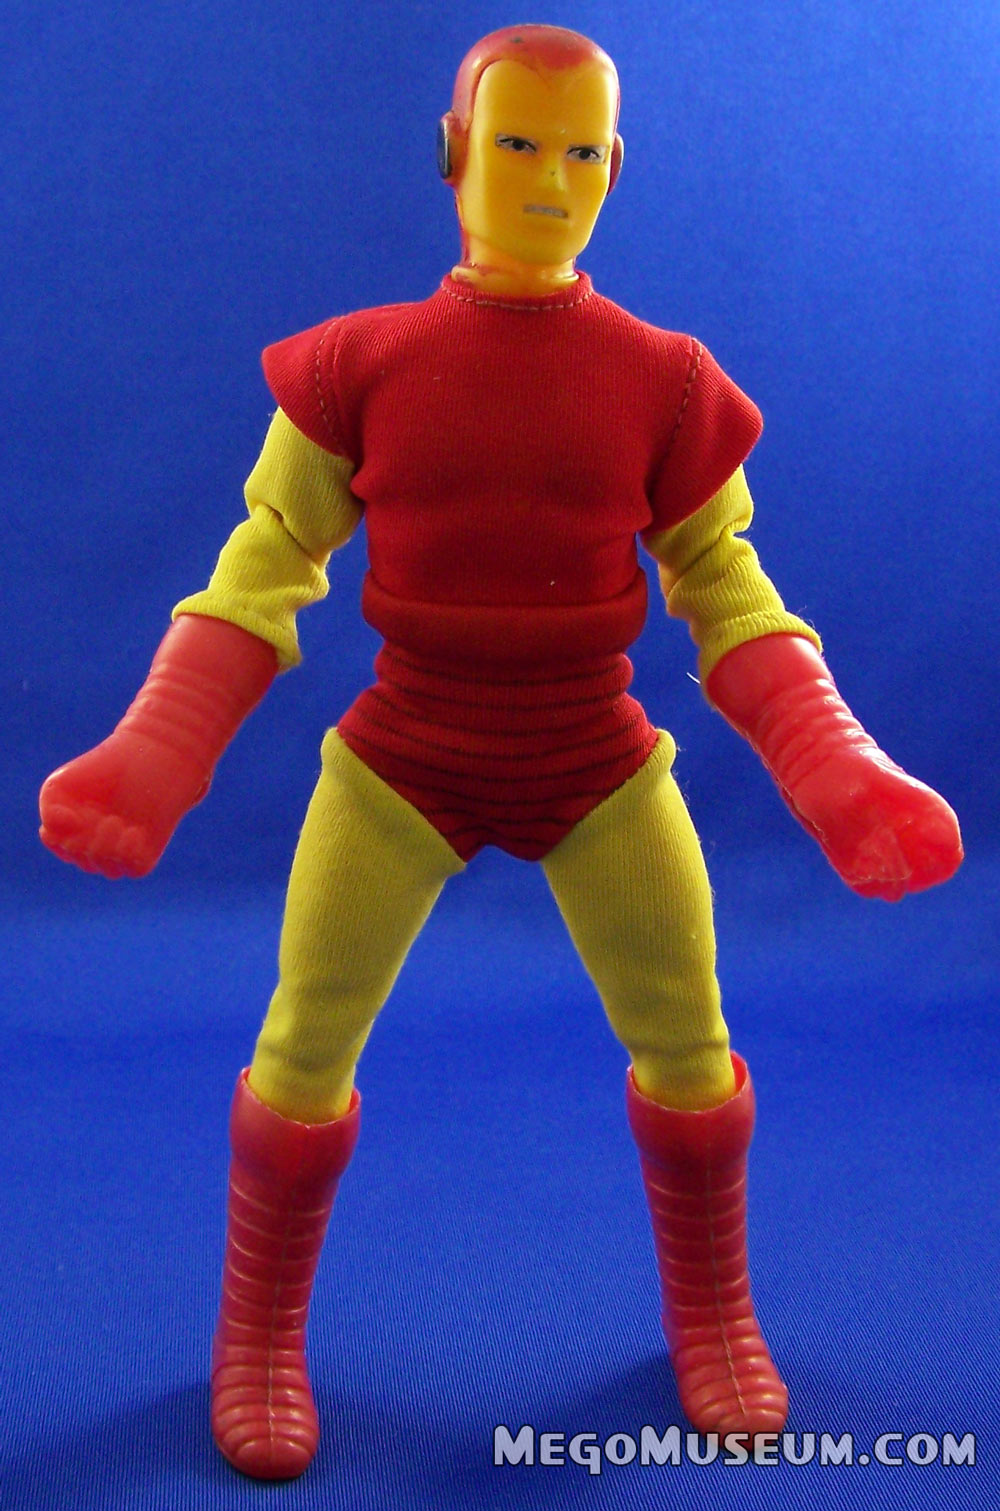 Ledy Iron Man Mego